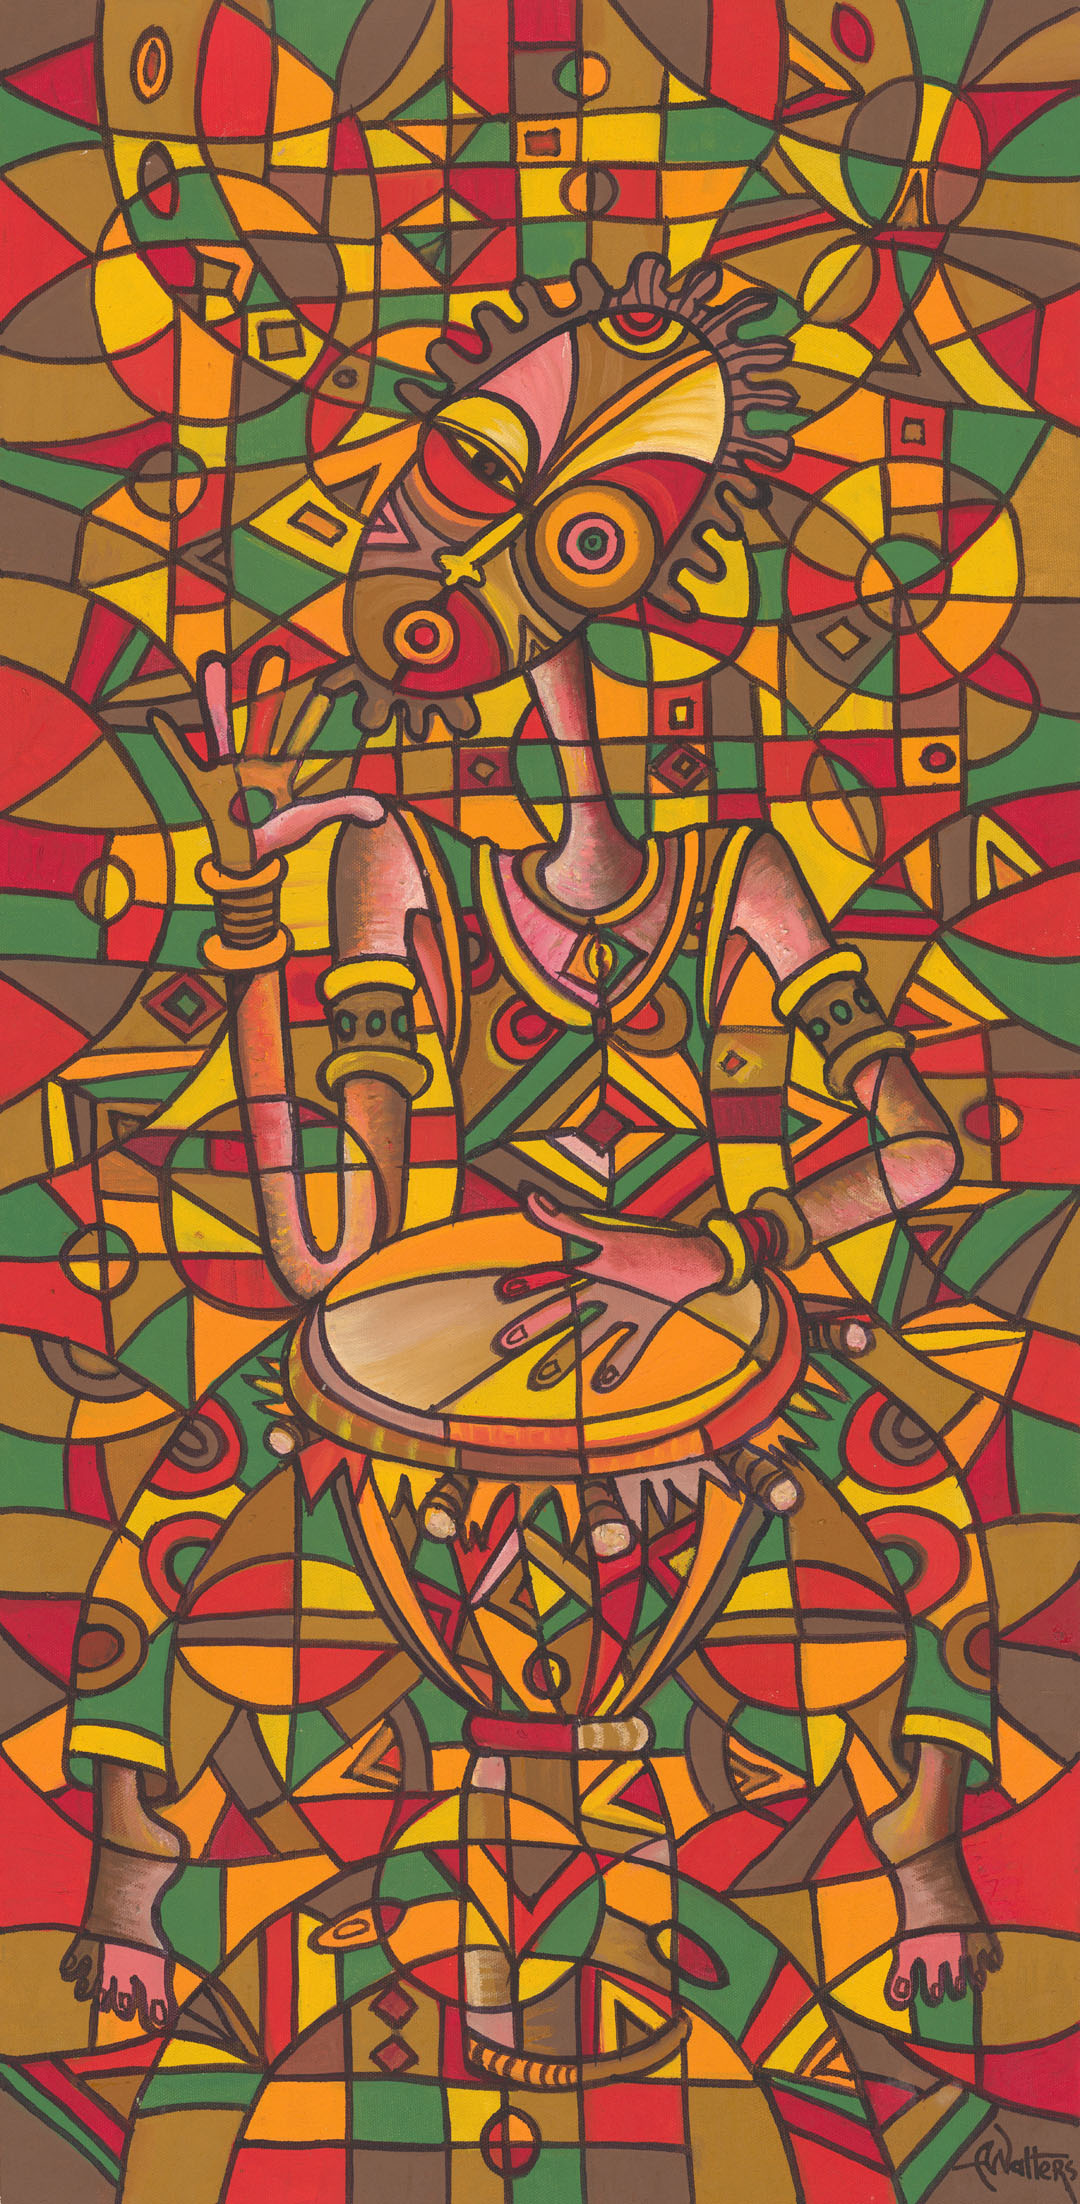 A yellow green and red painting of an African musician playing the drum, from Cameroon.